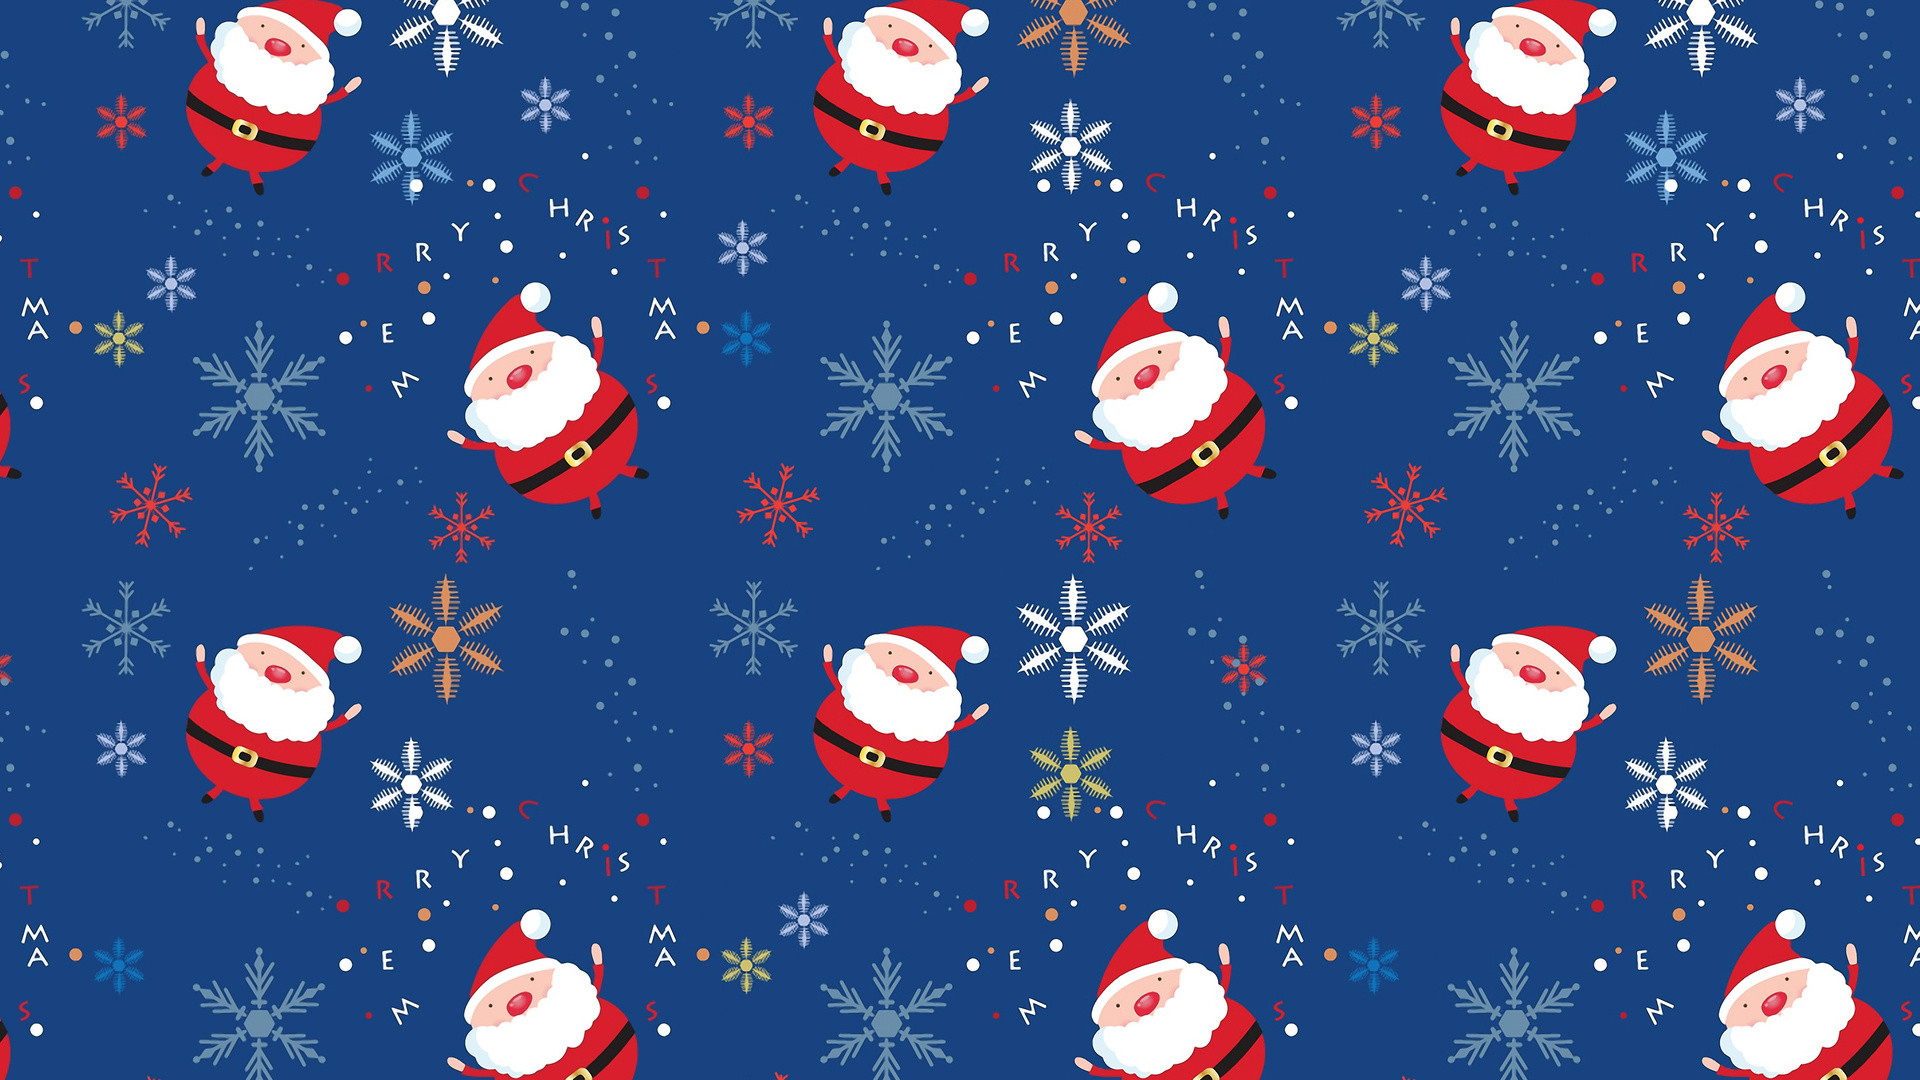 Cute Christmas Desktop Backgrounds (63+